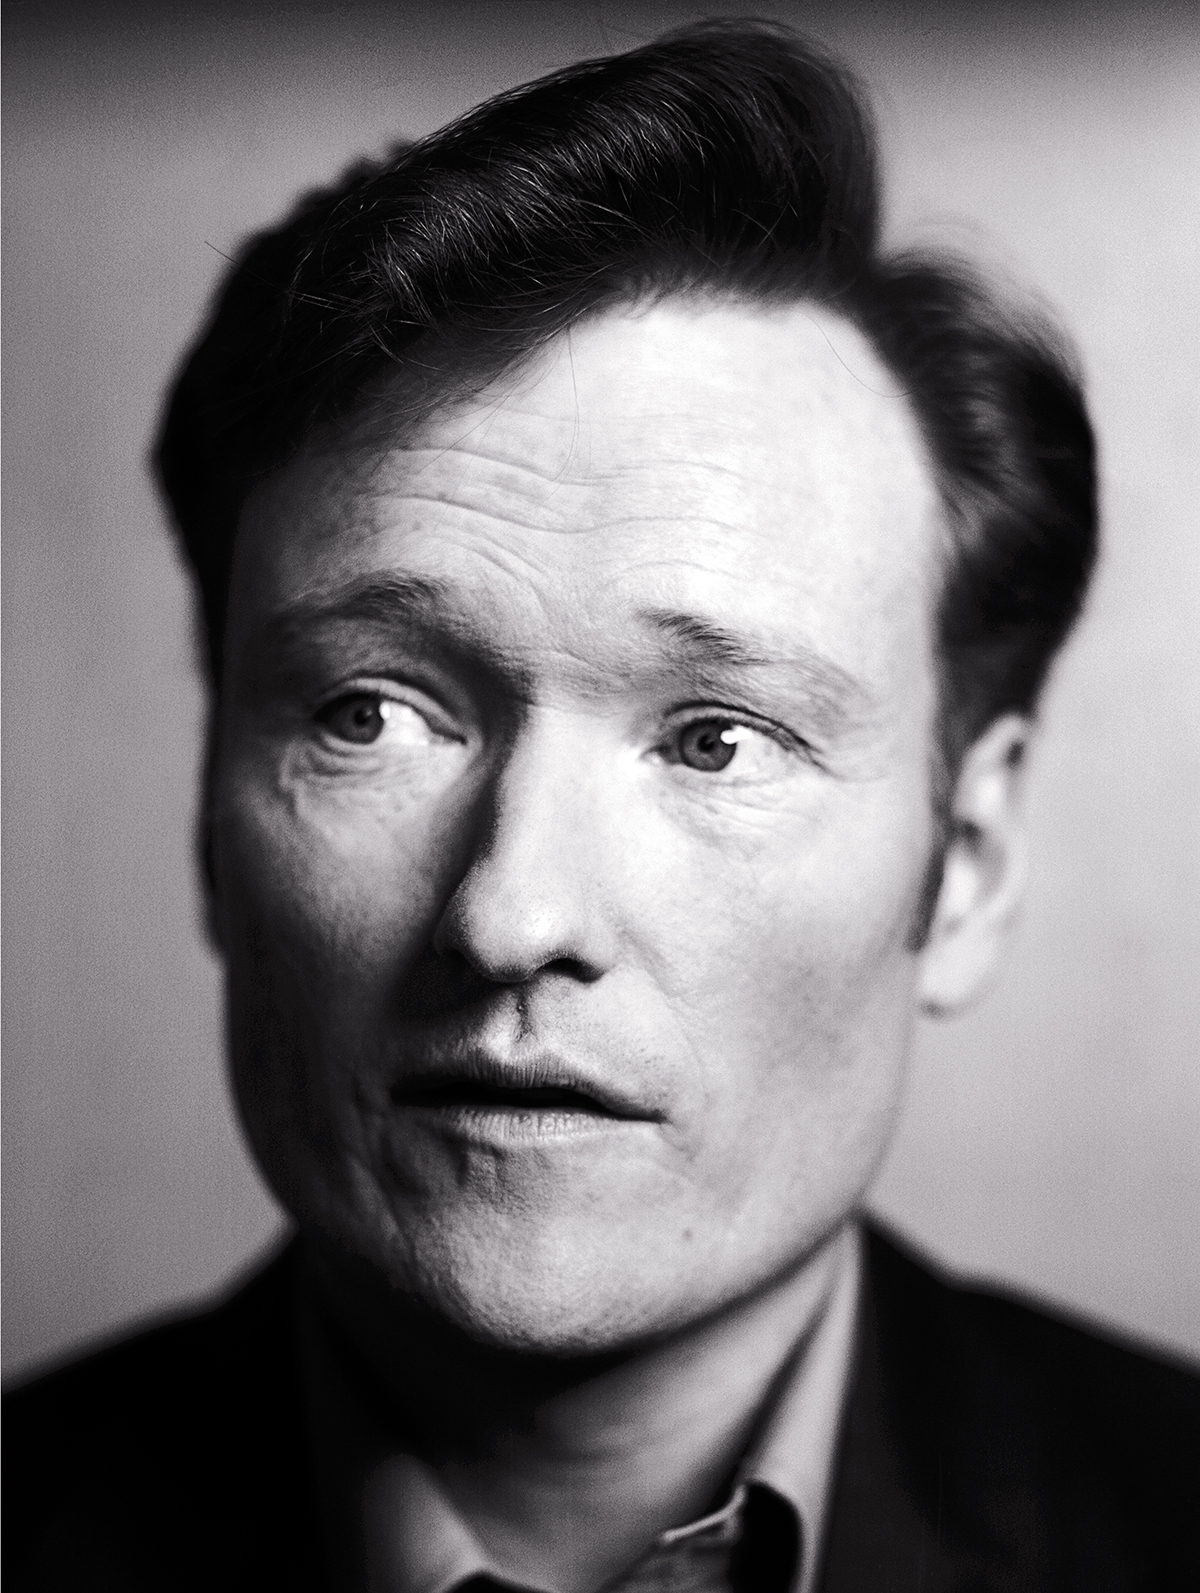 conan photo by john goodman